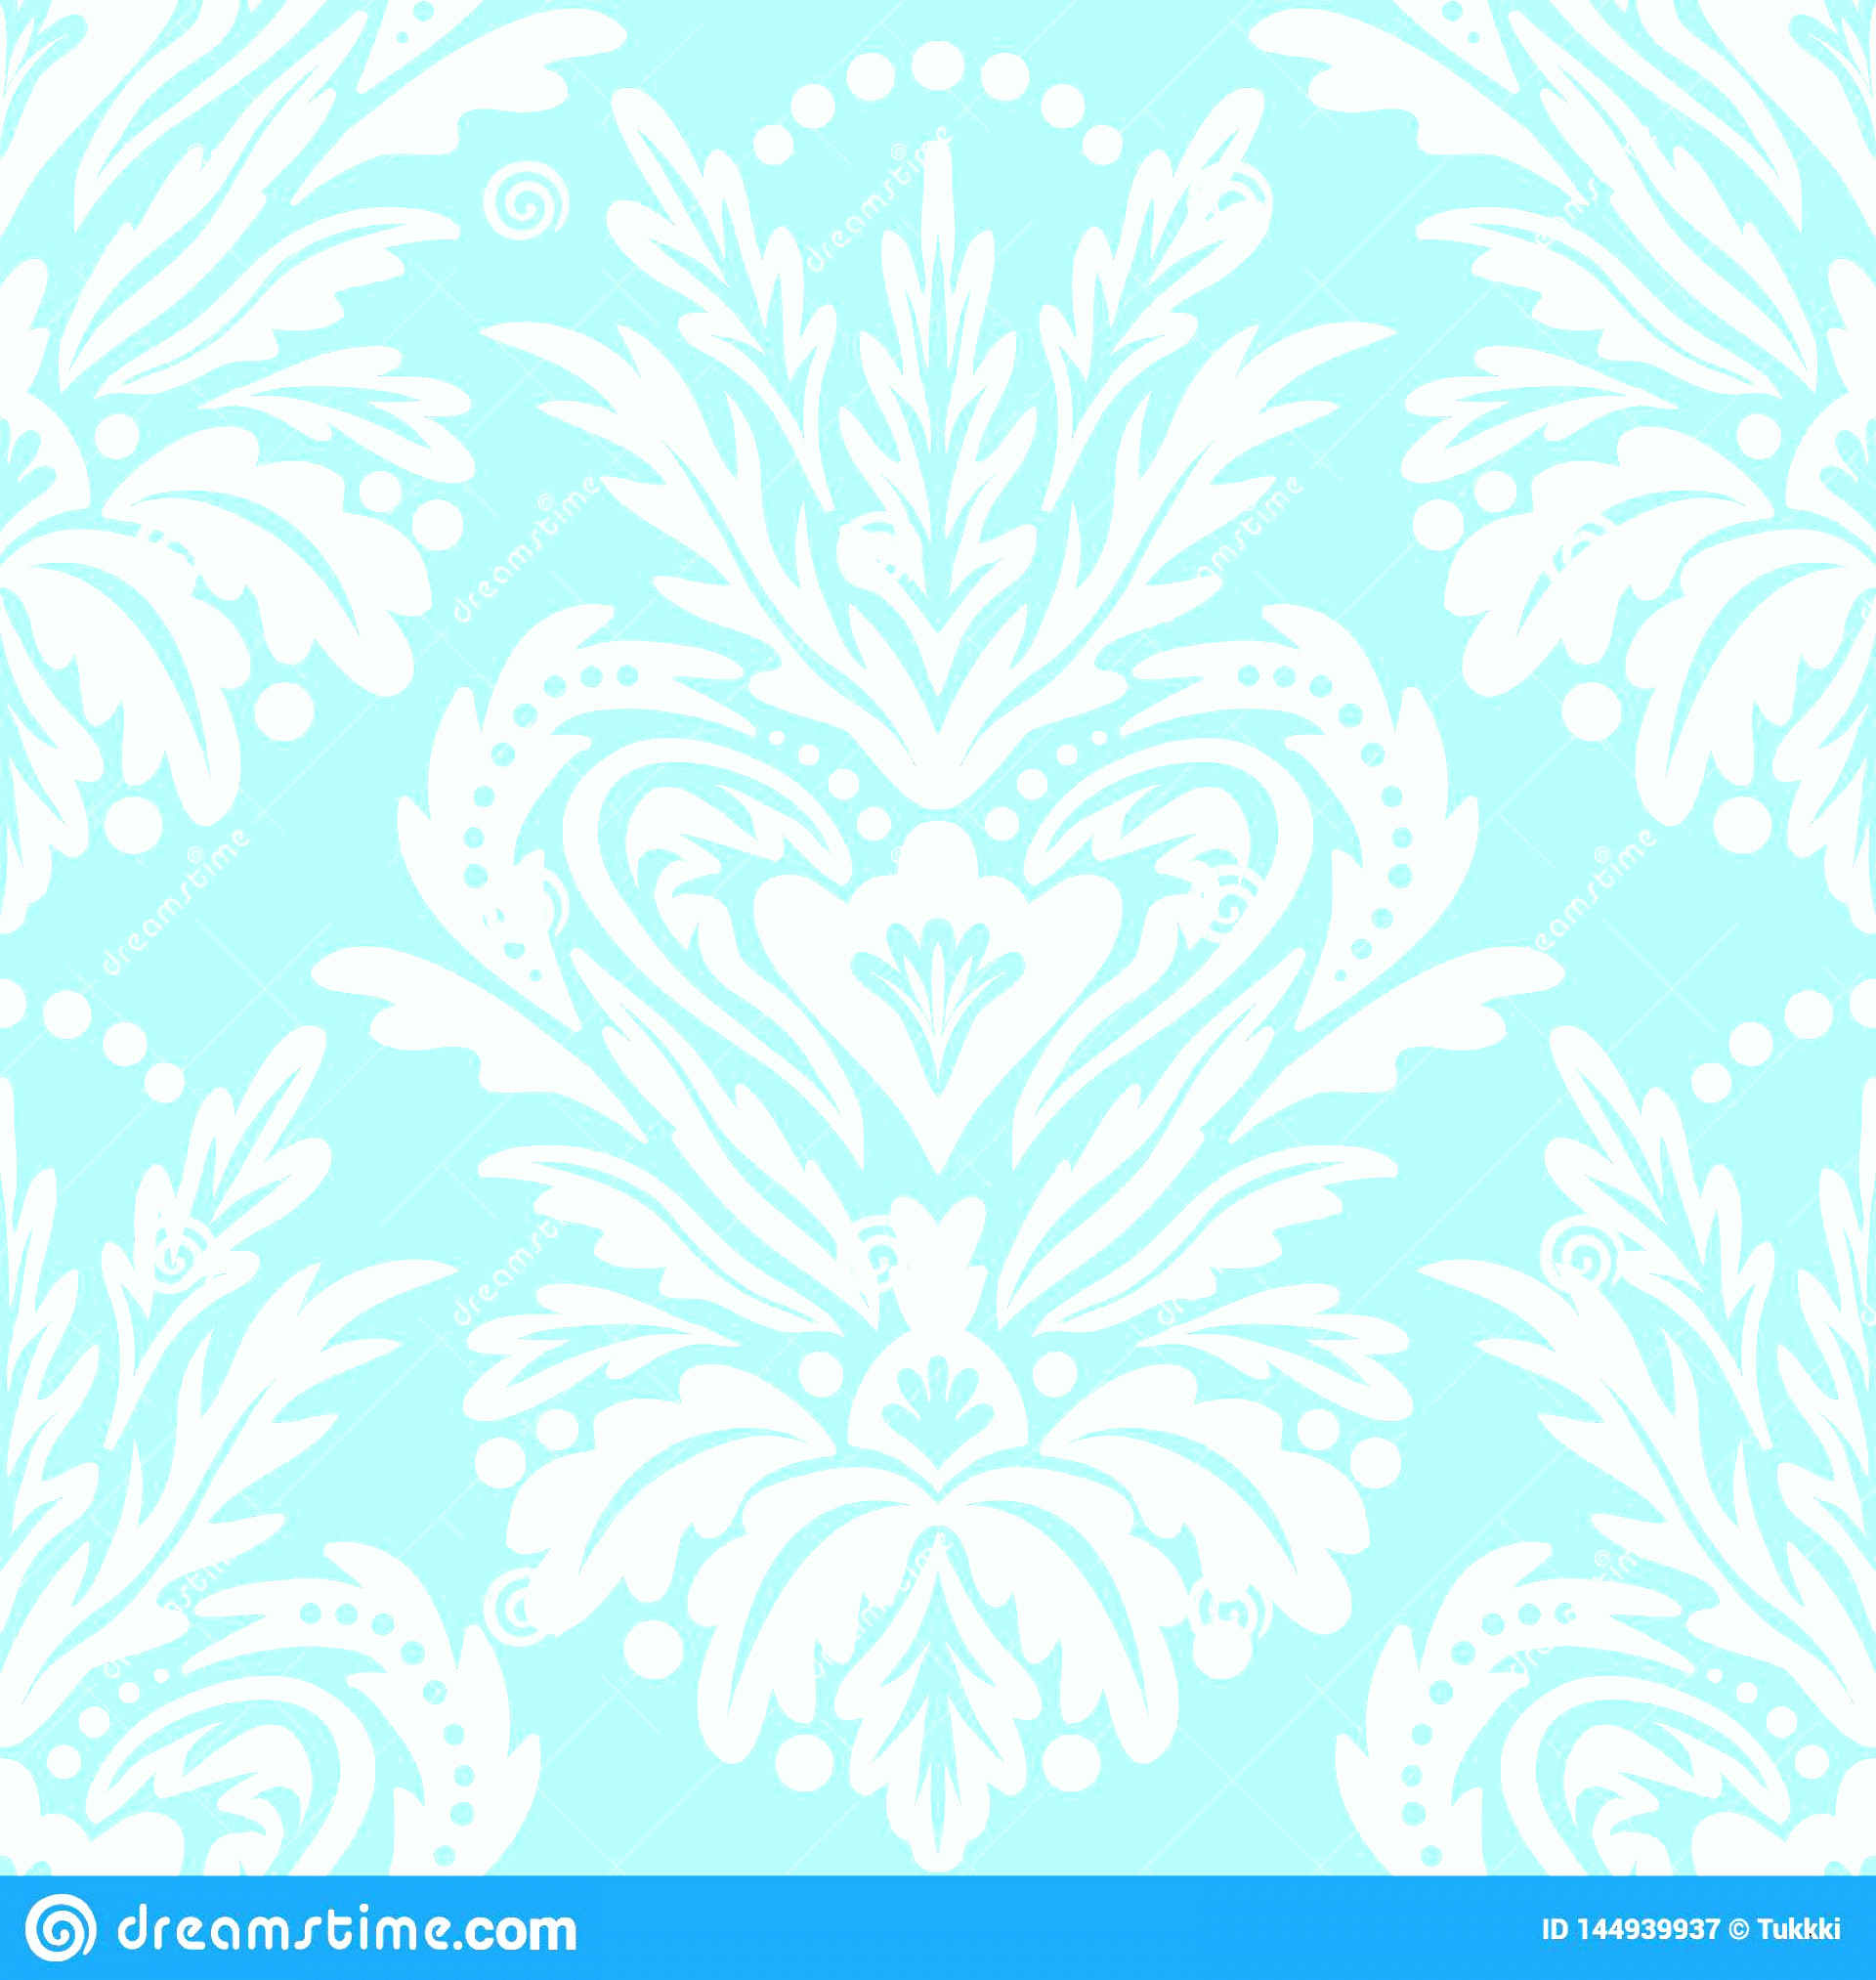 Blue And White Damask Vectors: Vector Vintage Victorian Pattern Damask Motif Christmas Decor Chic Abstract Winter Floral Background Blue Seamless Image